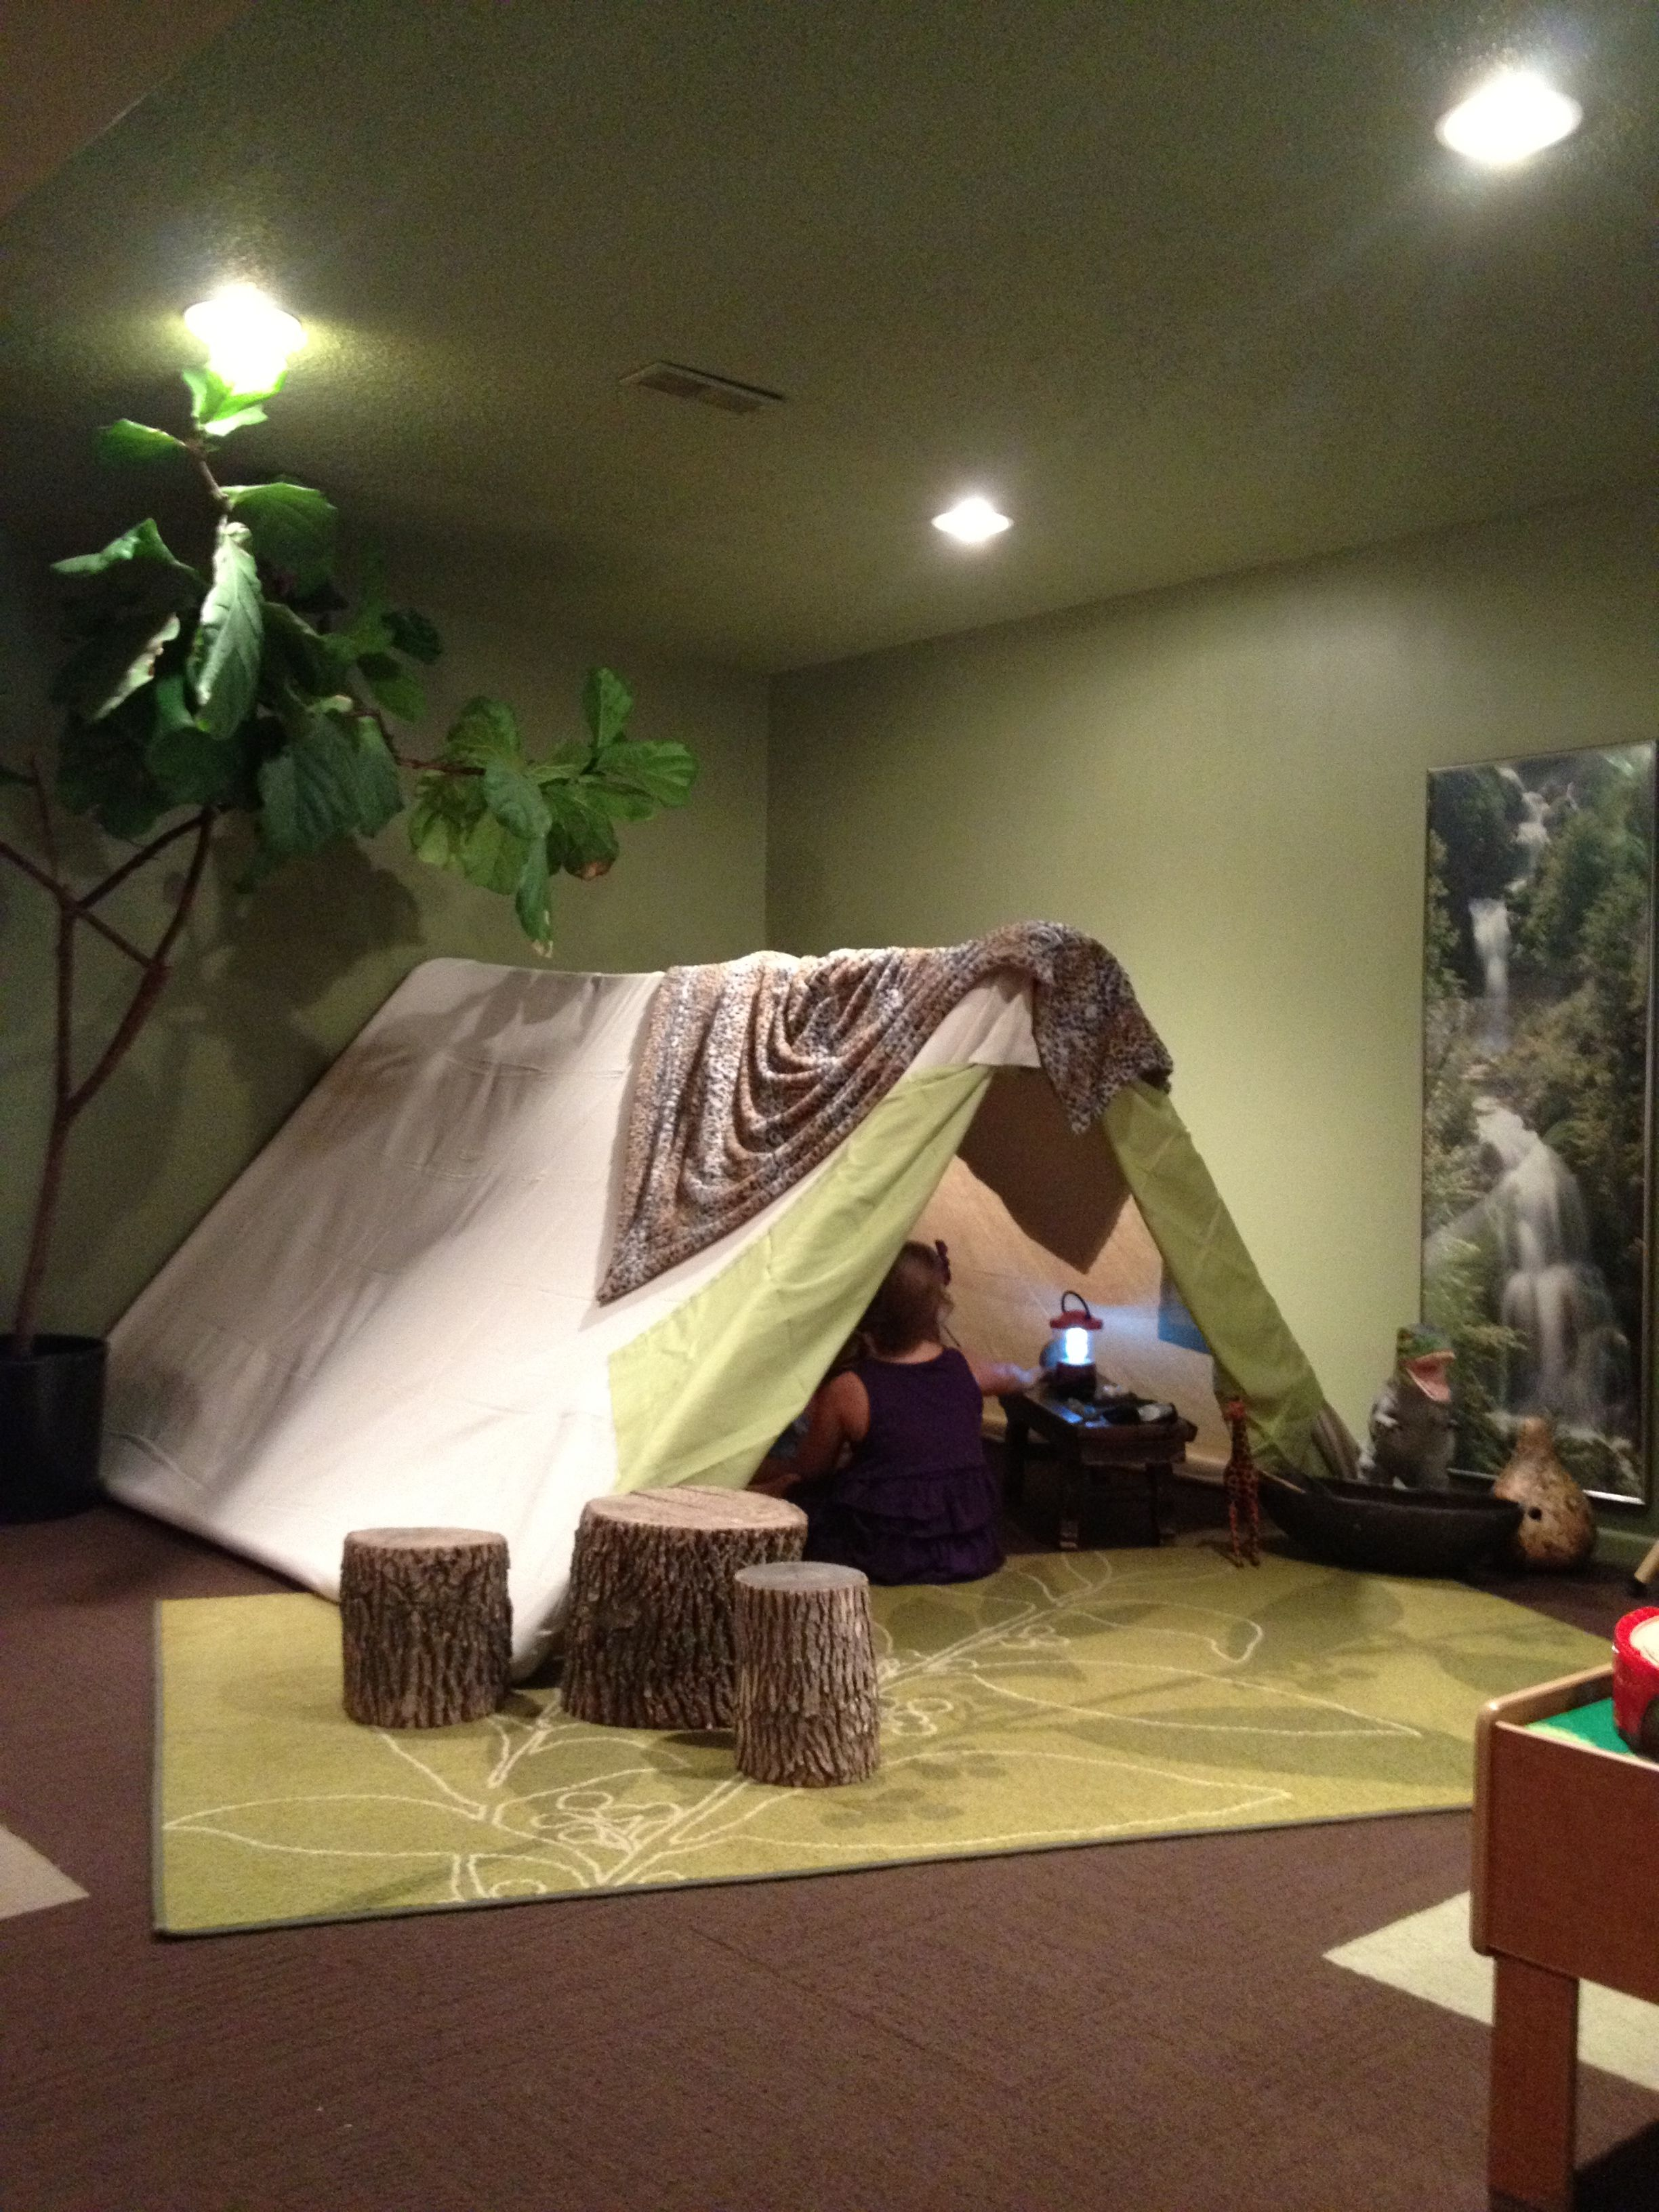 Tent / fort made from PVC pipe and a painters canvas